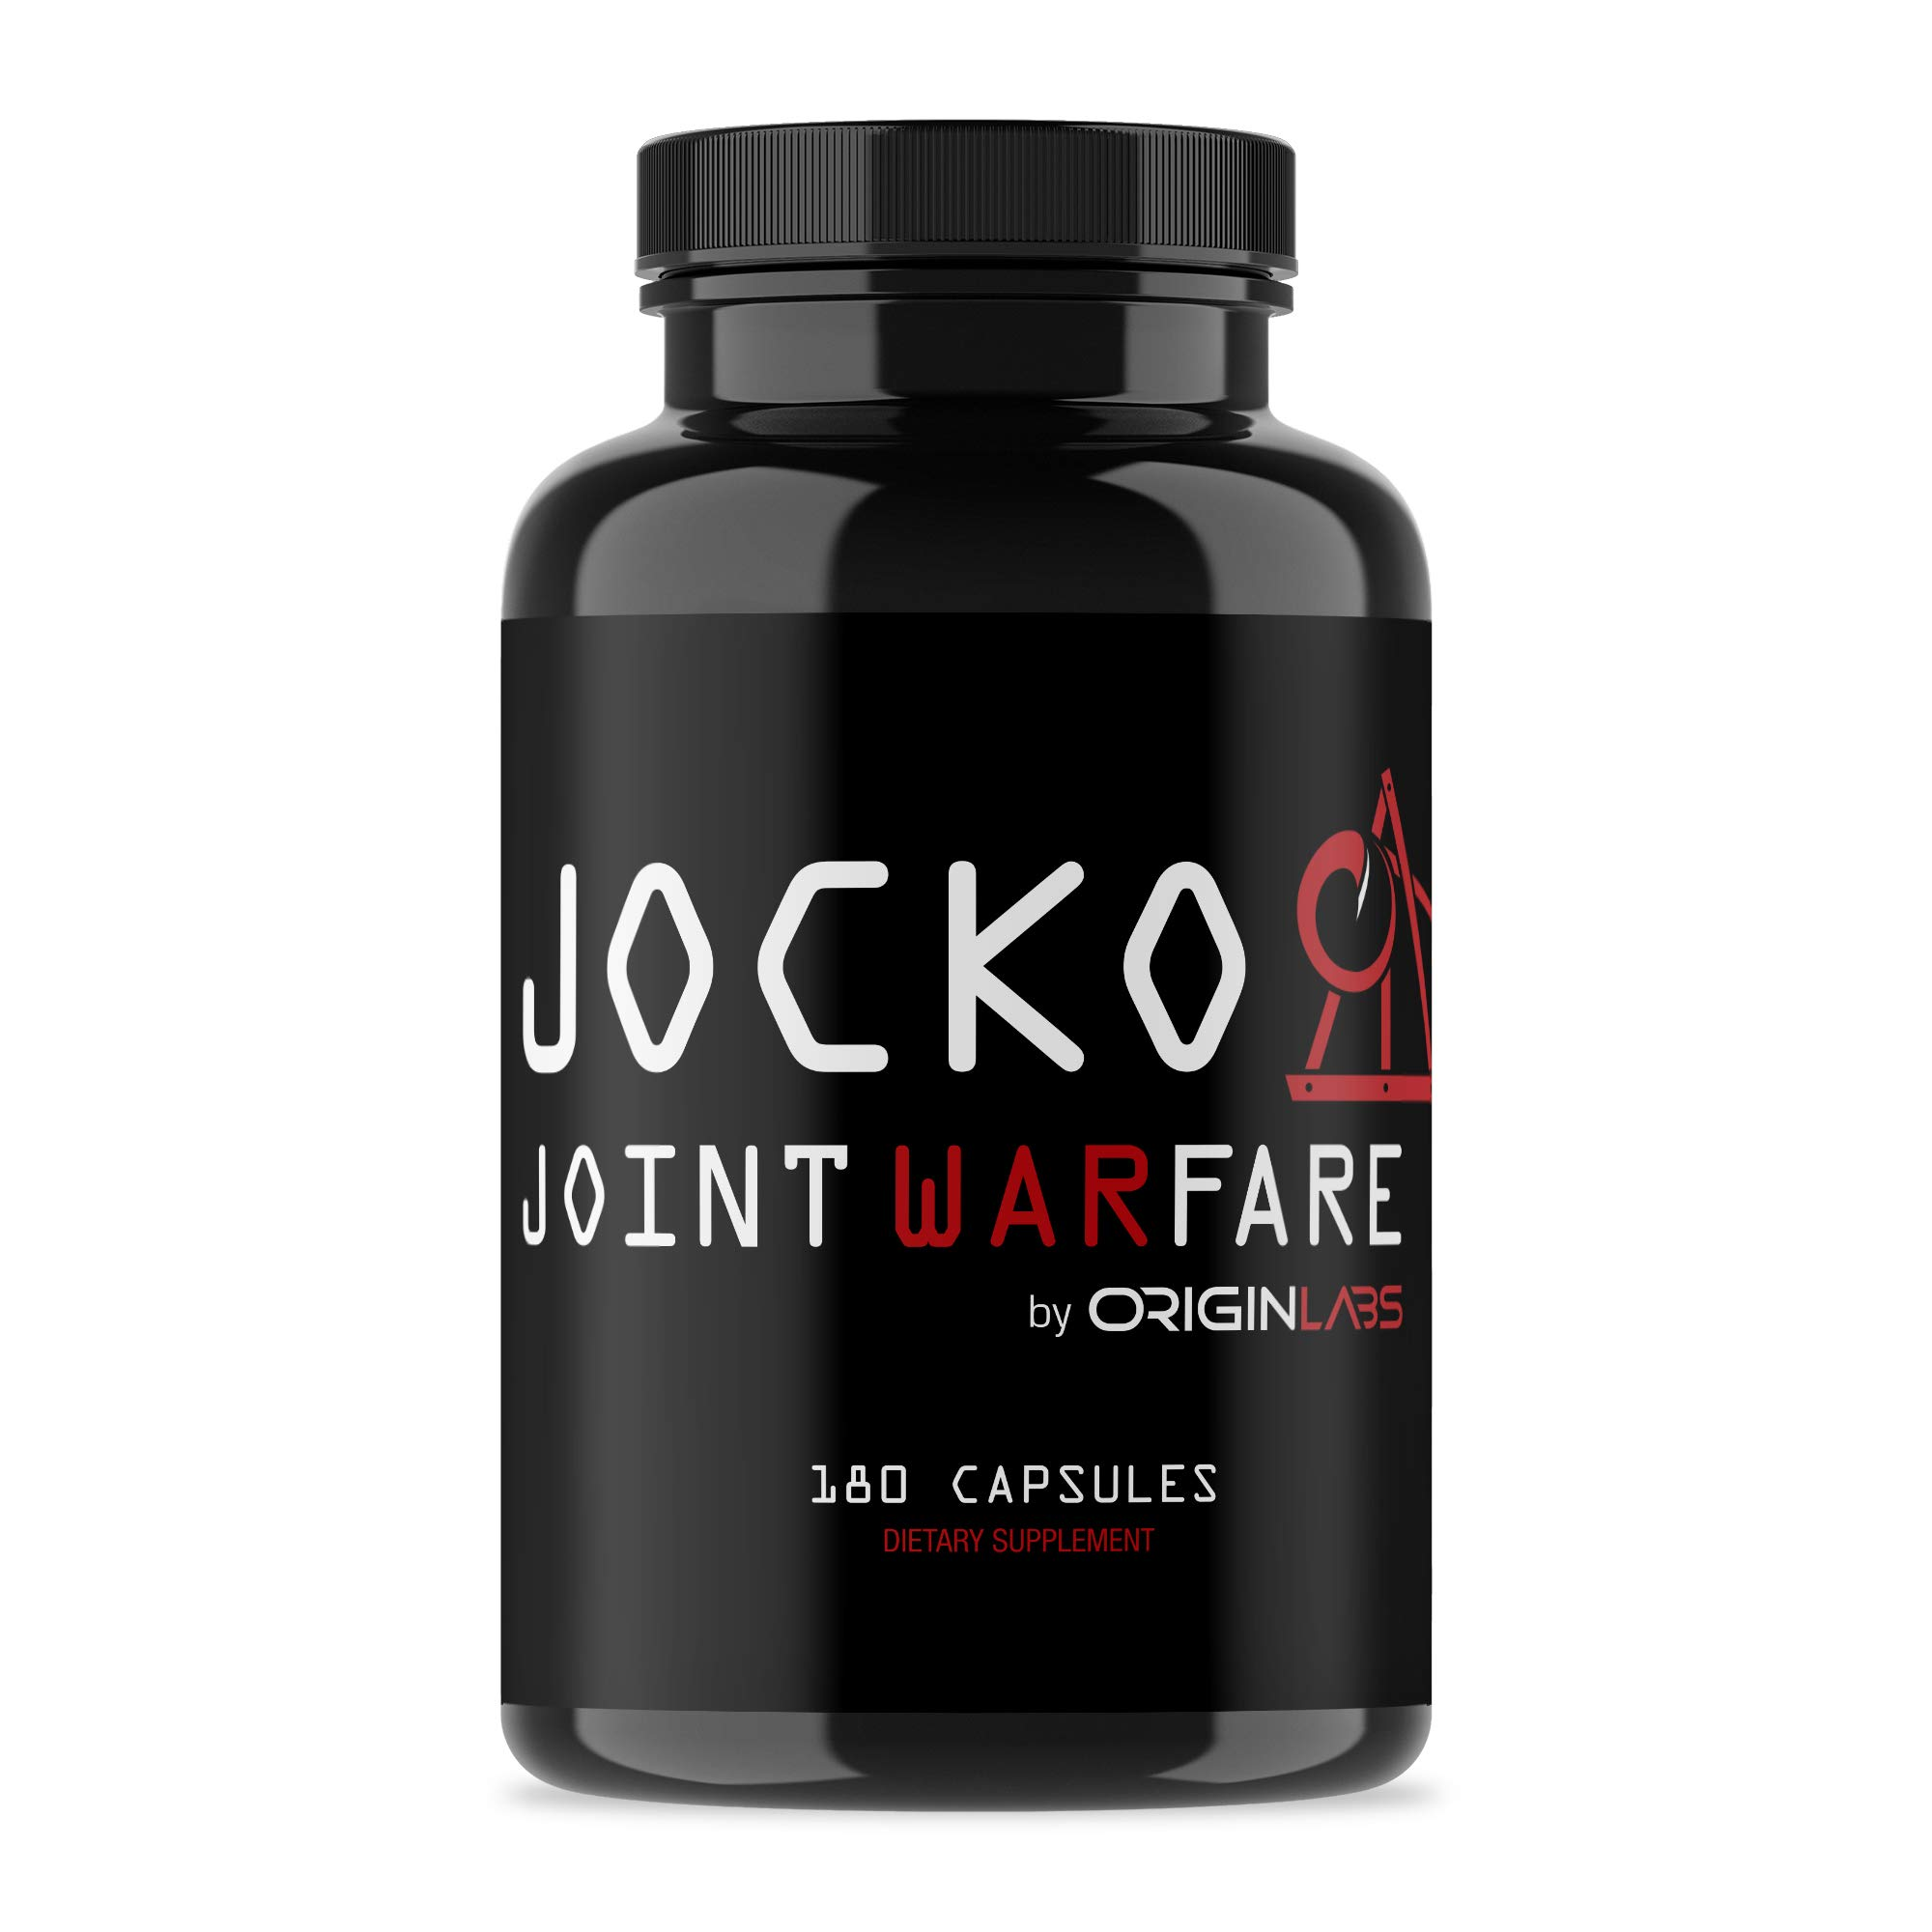 Jocko Joint Warfare by Origin Labs - Joint Support - Curcumin Supplements - Glucosamine - MSM - Boswellia - Quercetin - Joint Supplements - 400mg - 180 Tablets